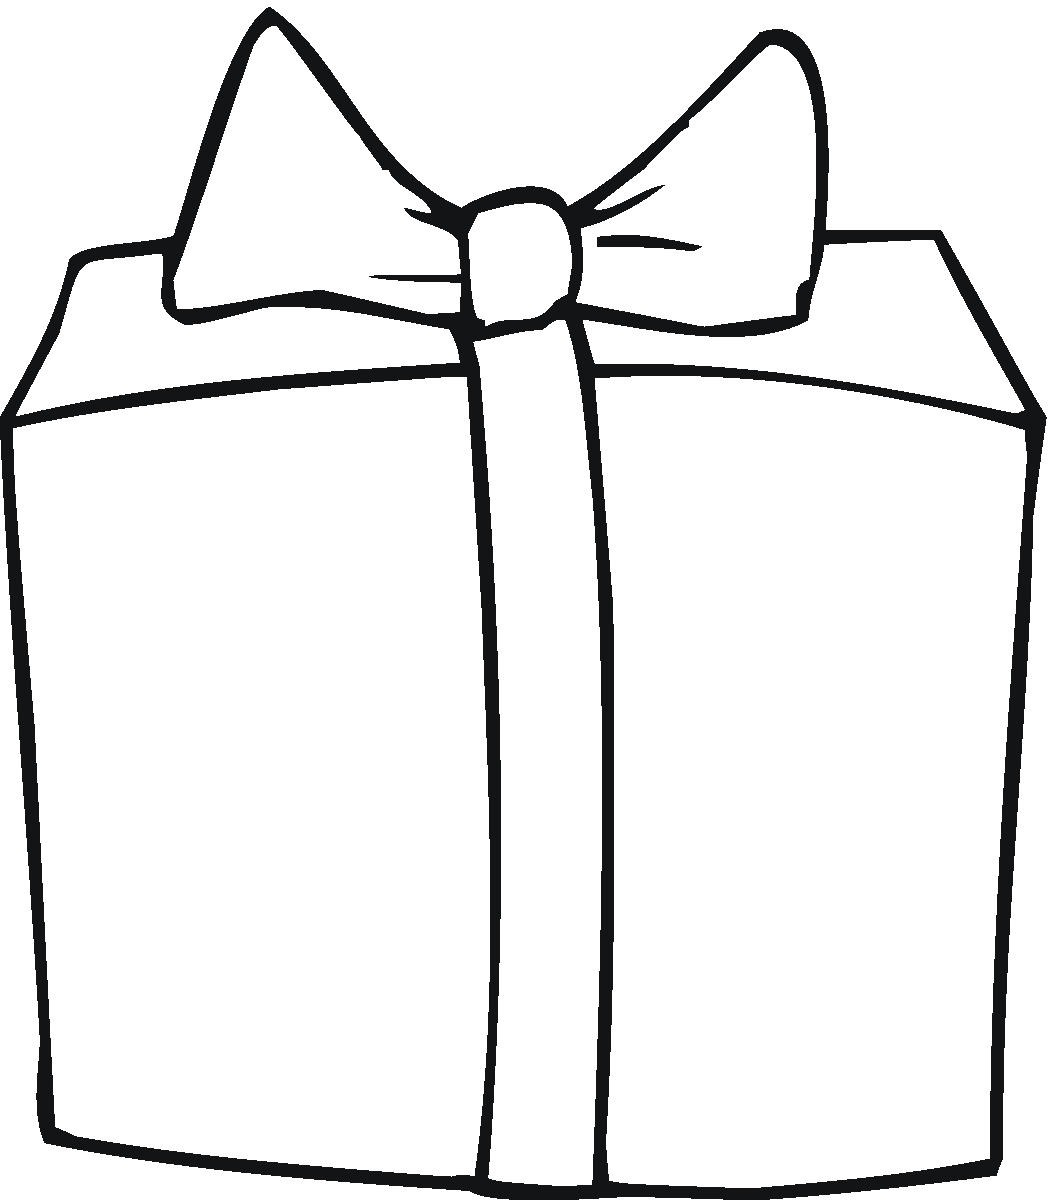 Gift Box Clipart | Free download best Gift Box Clipart on ClipArtMag.com